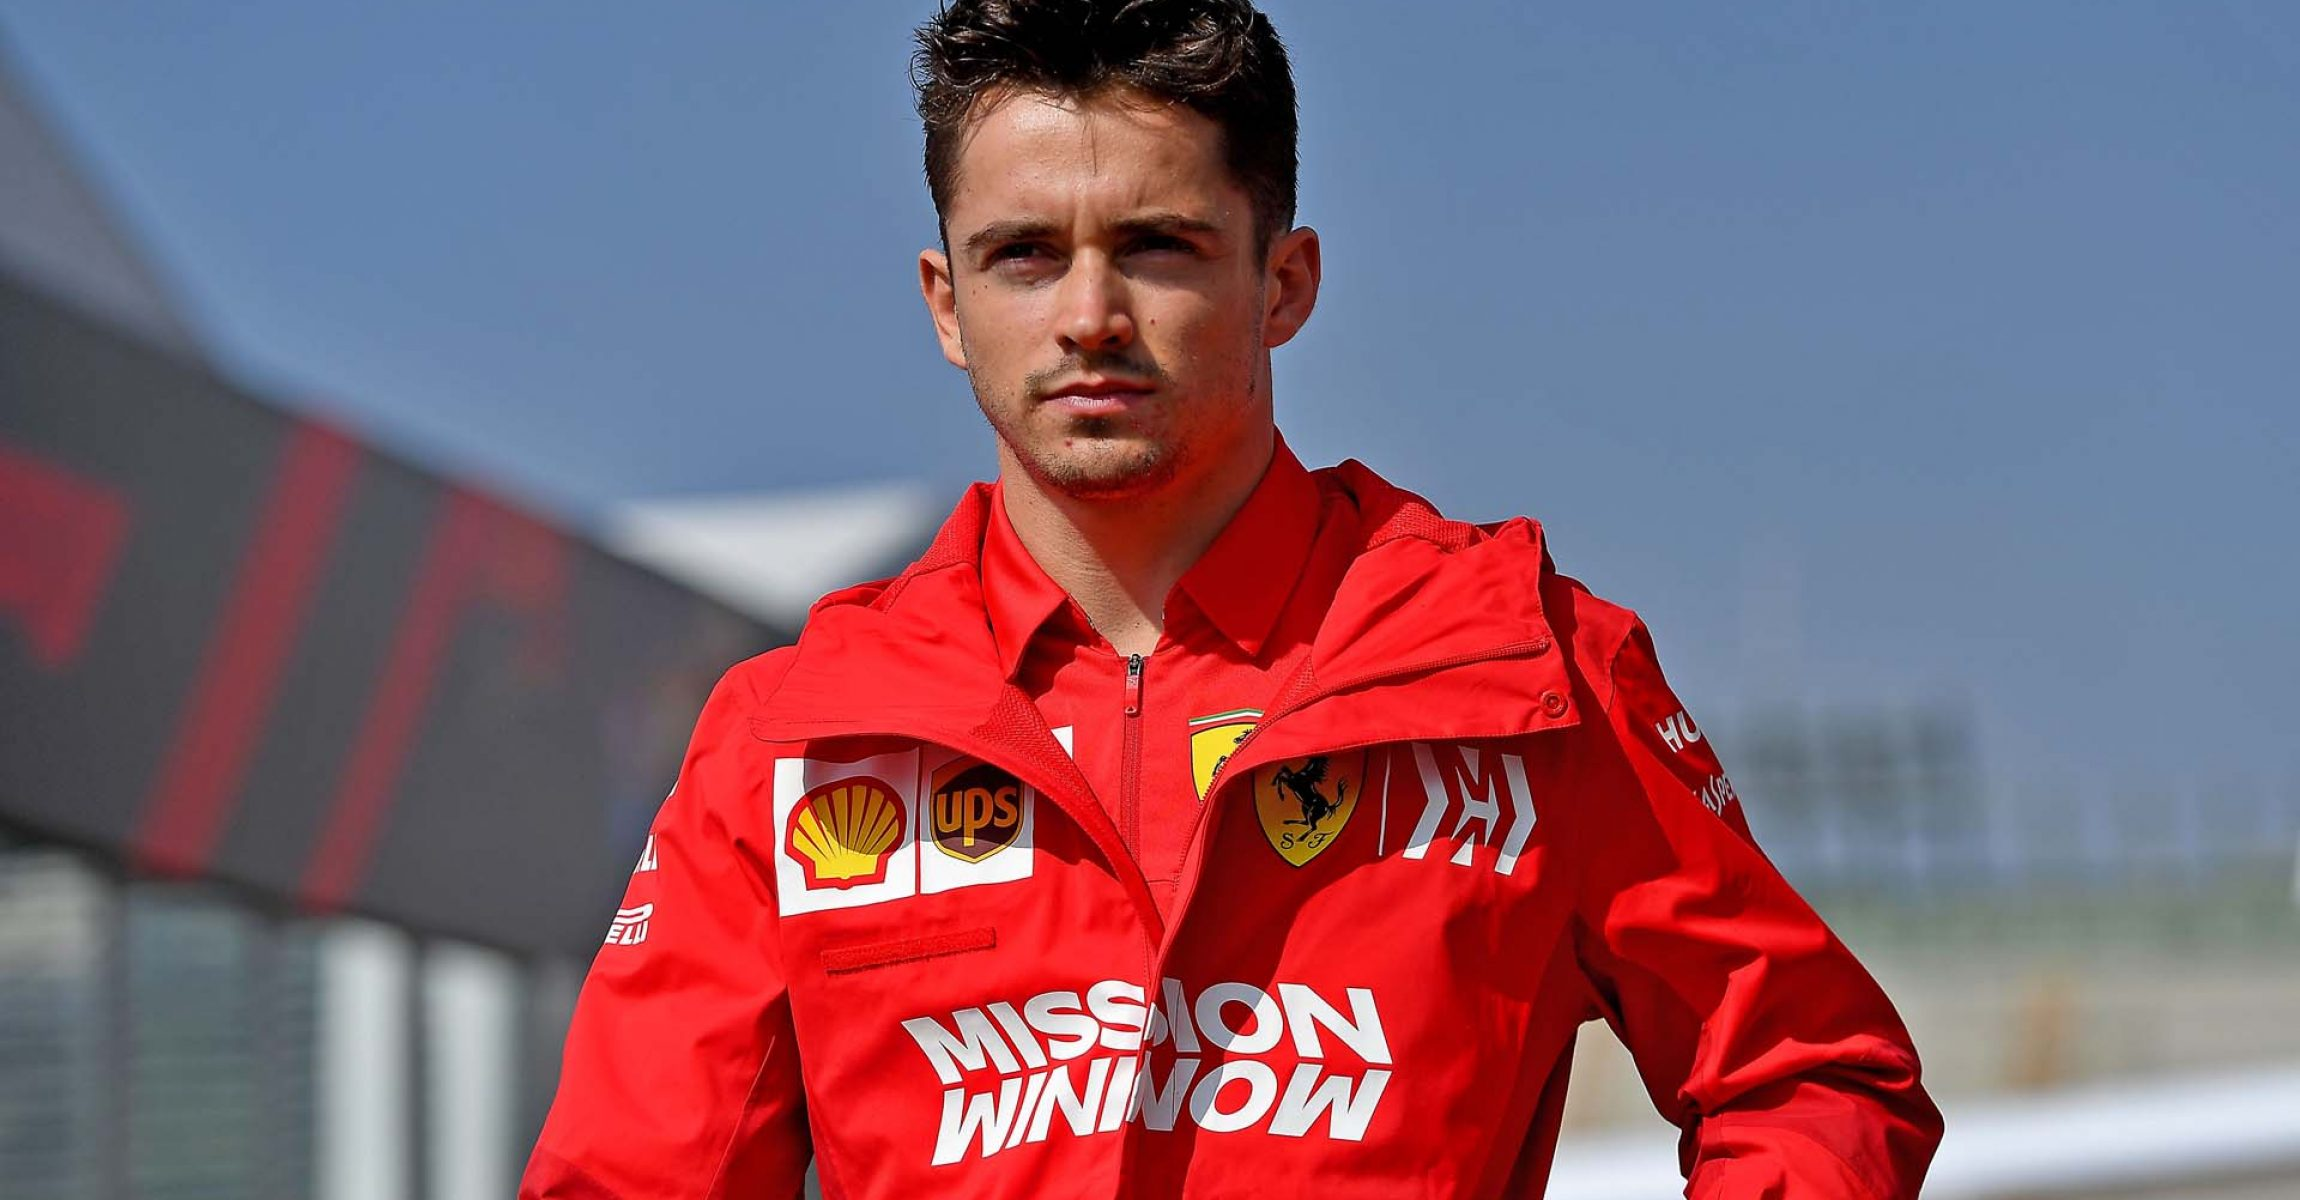 GP MESSICO  F1/2019 -  GIOVEDÌ 24/10/2019    credit: @Scuderia Ferrari Press Office Charles Leclerc